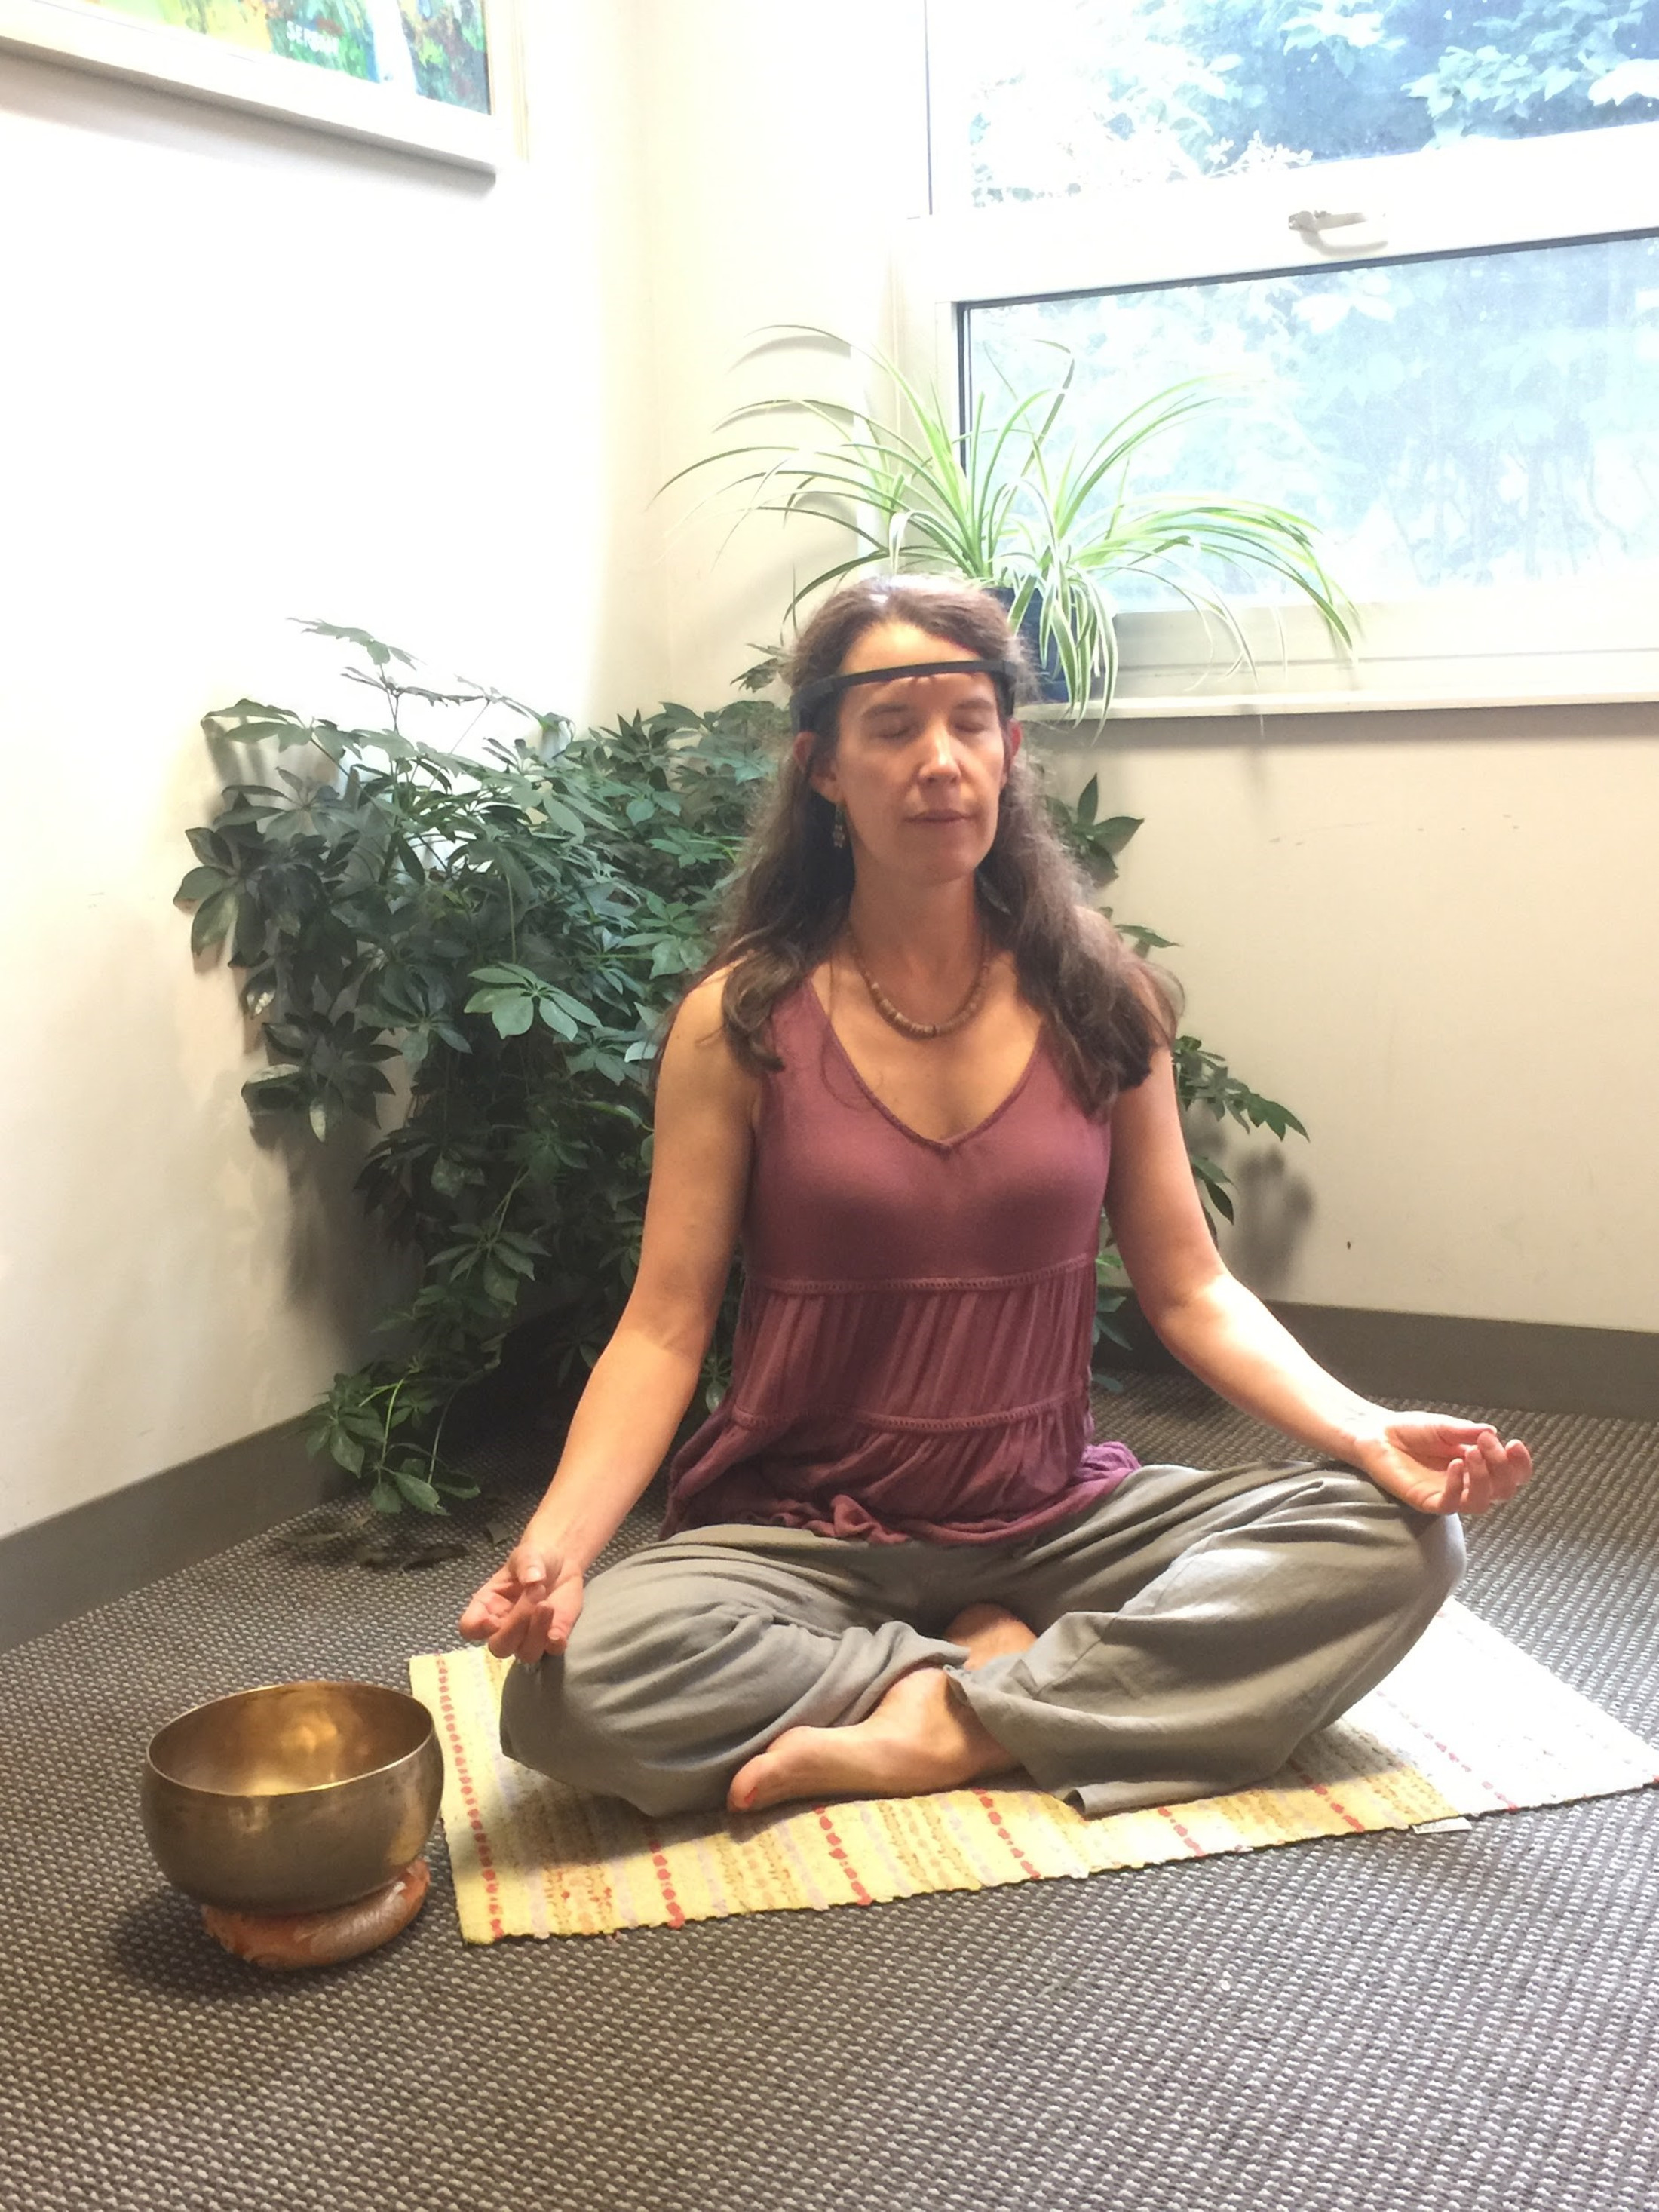 Rebecca Acabchuk practicing meditation and demonstrating the MUSE headband device. Photo provided by Rebecca Acabchuk.